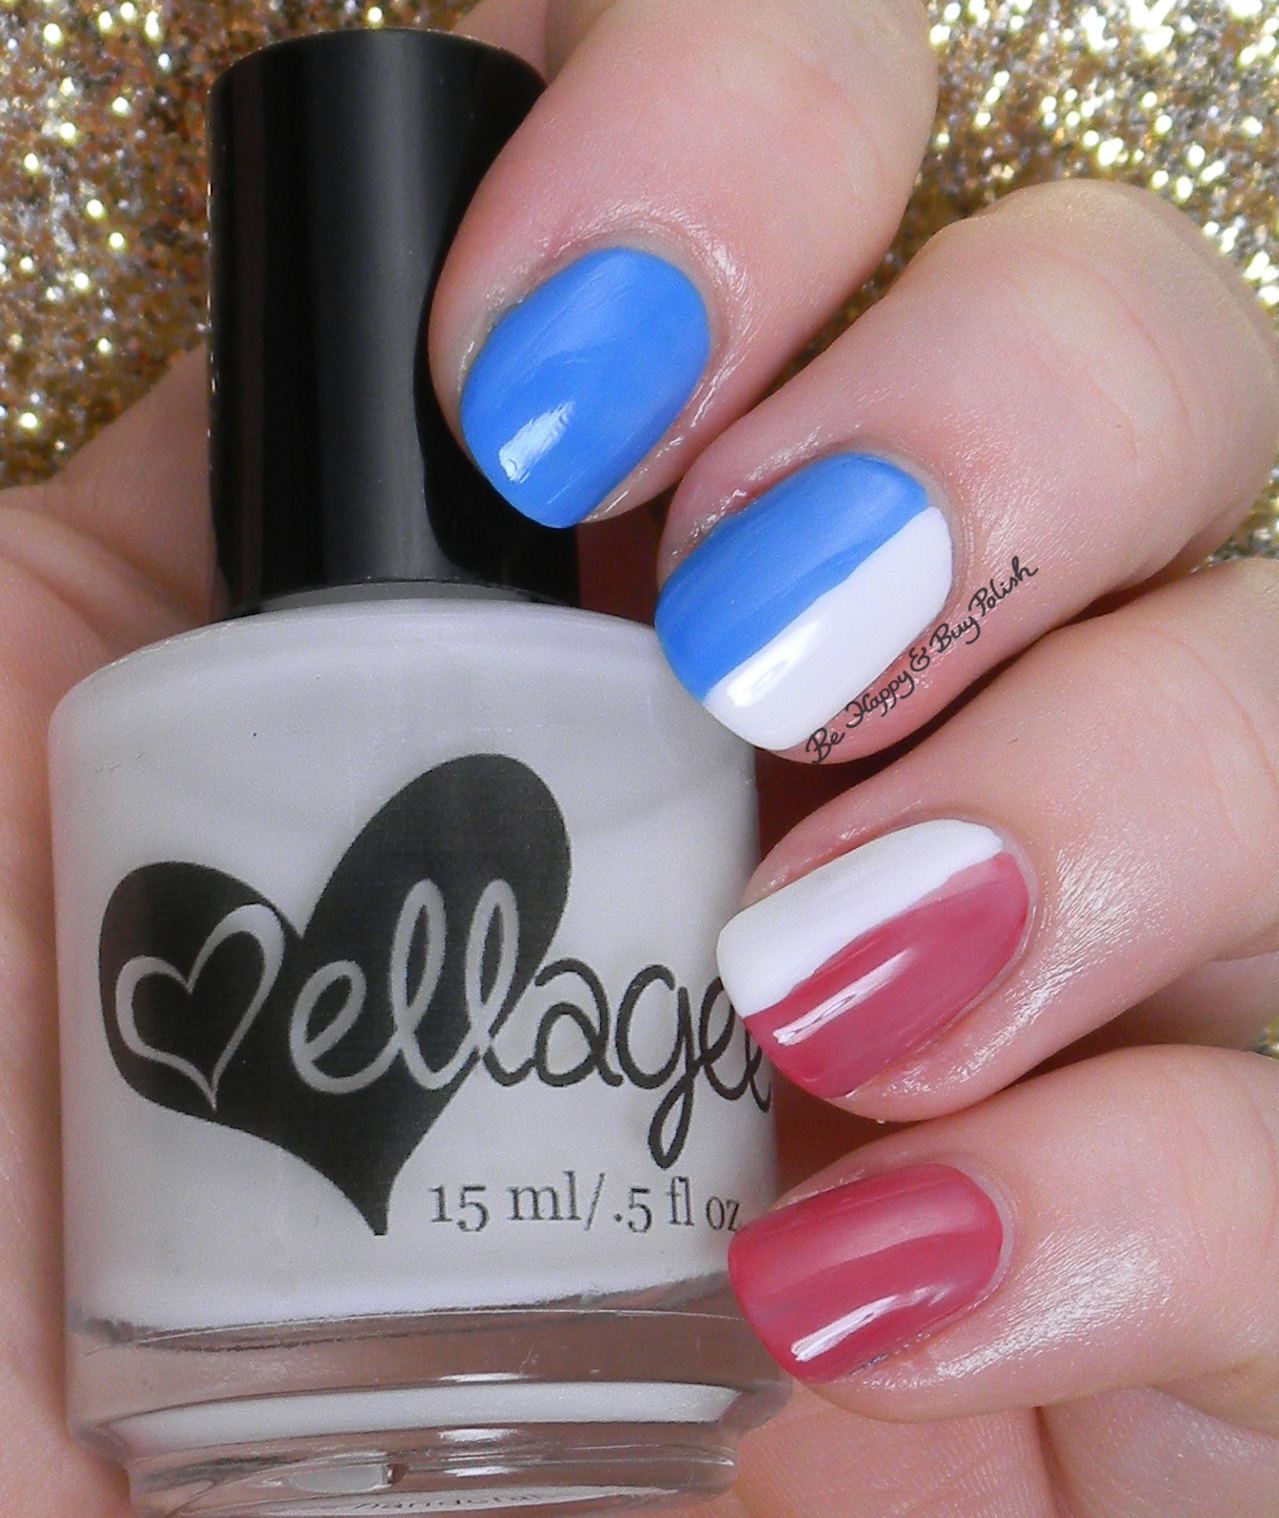 12 Days of Xmas Manis Challenge   Be Happy and Buy Polish